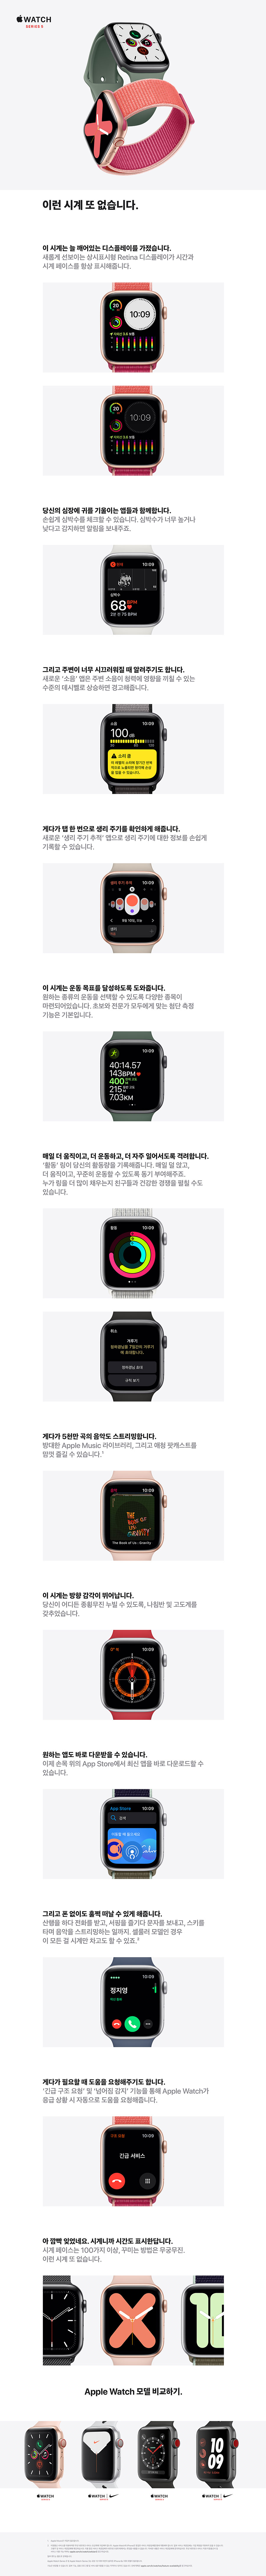 Apple_Watch_Series_5_GPS_productpage900.jpg